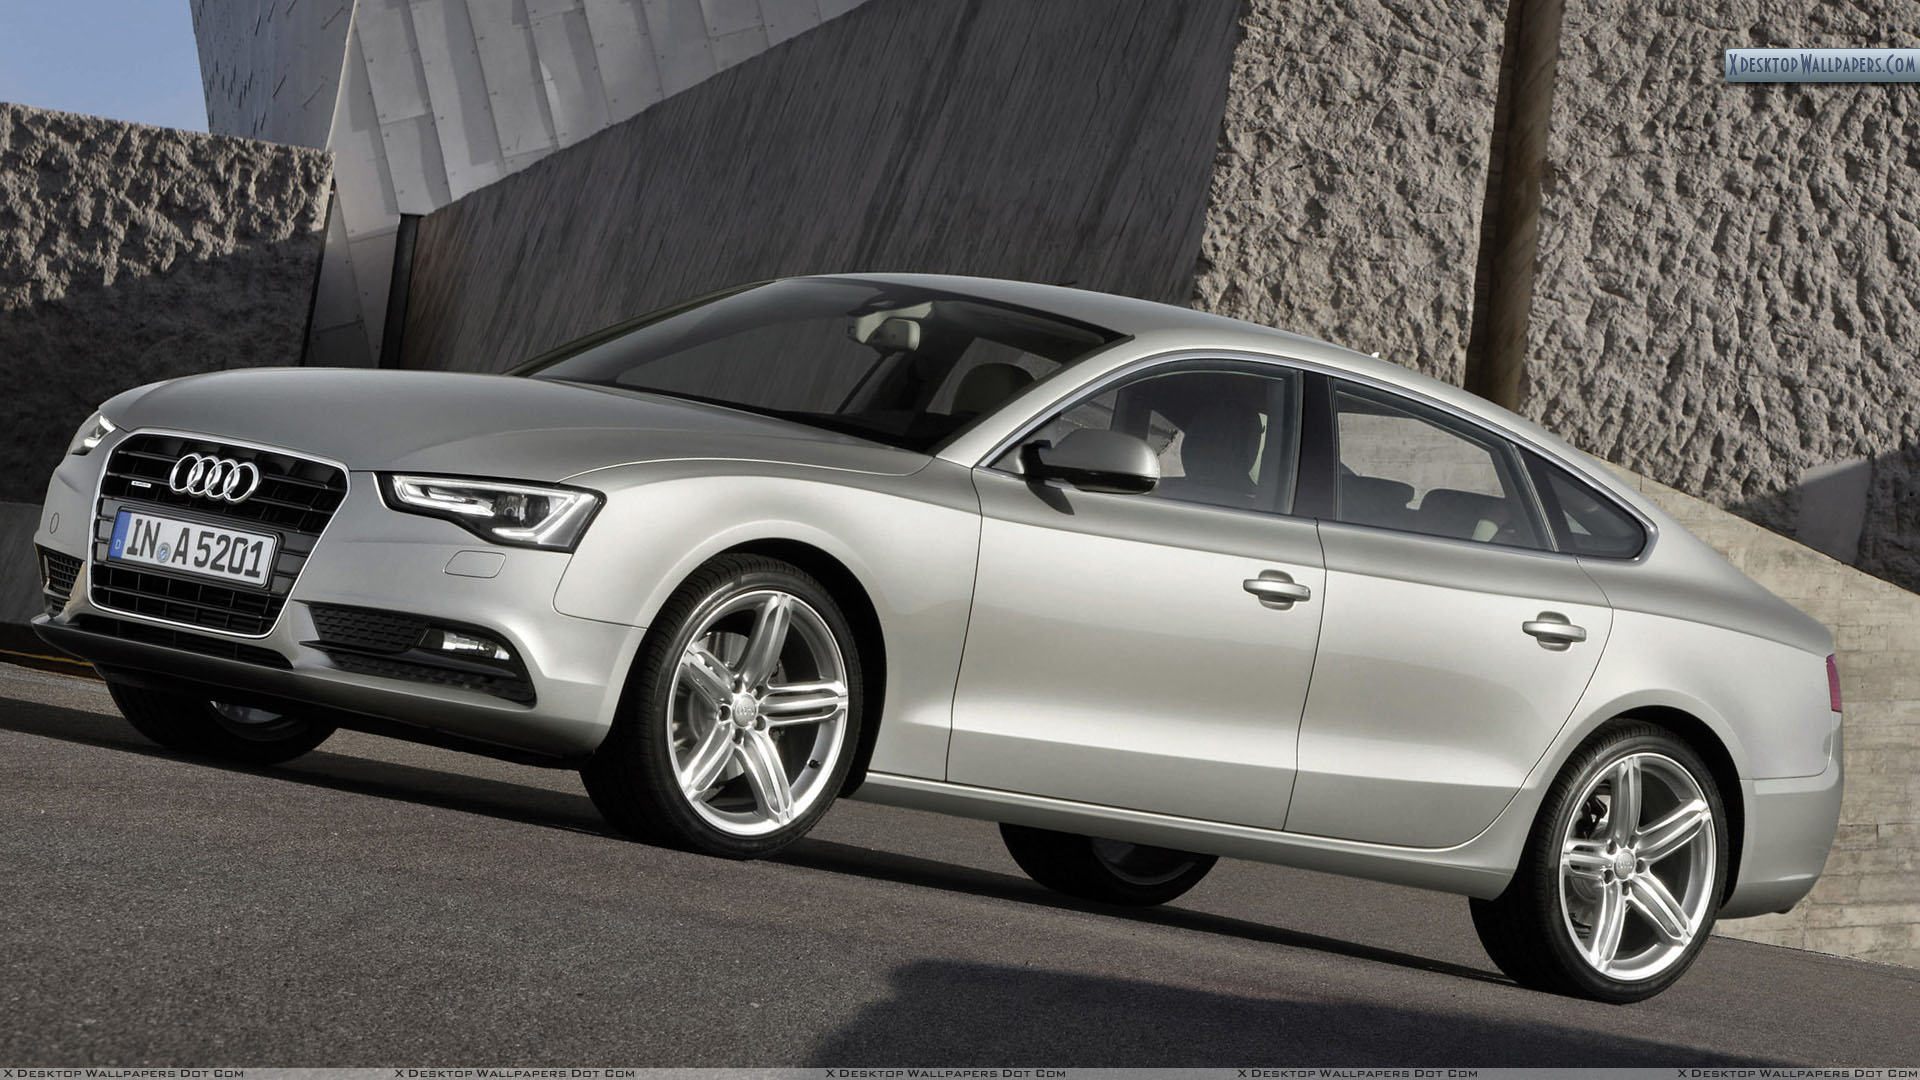 2012 audi a5 information and photos momentcar. Black Bedroom Furniture Sets. Home Design Ideas